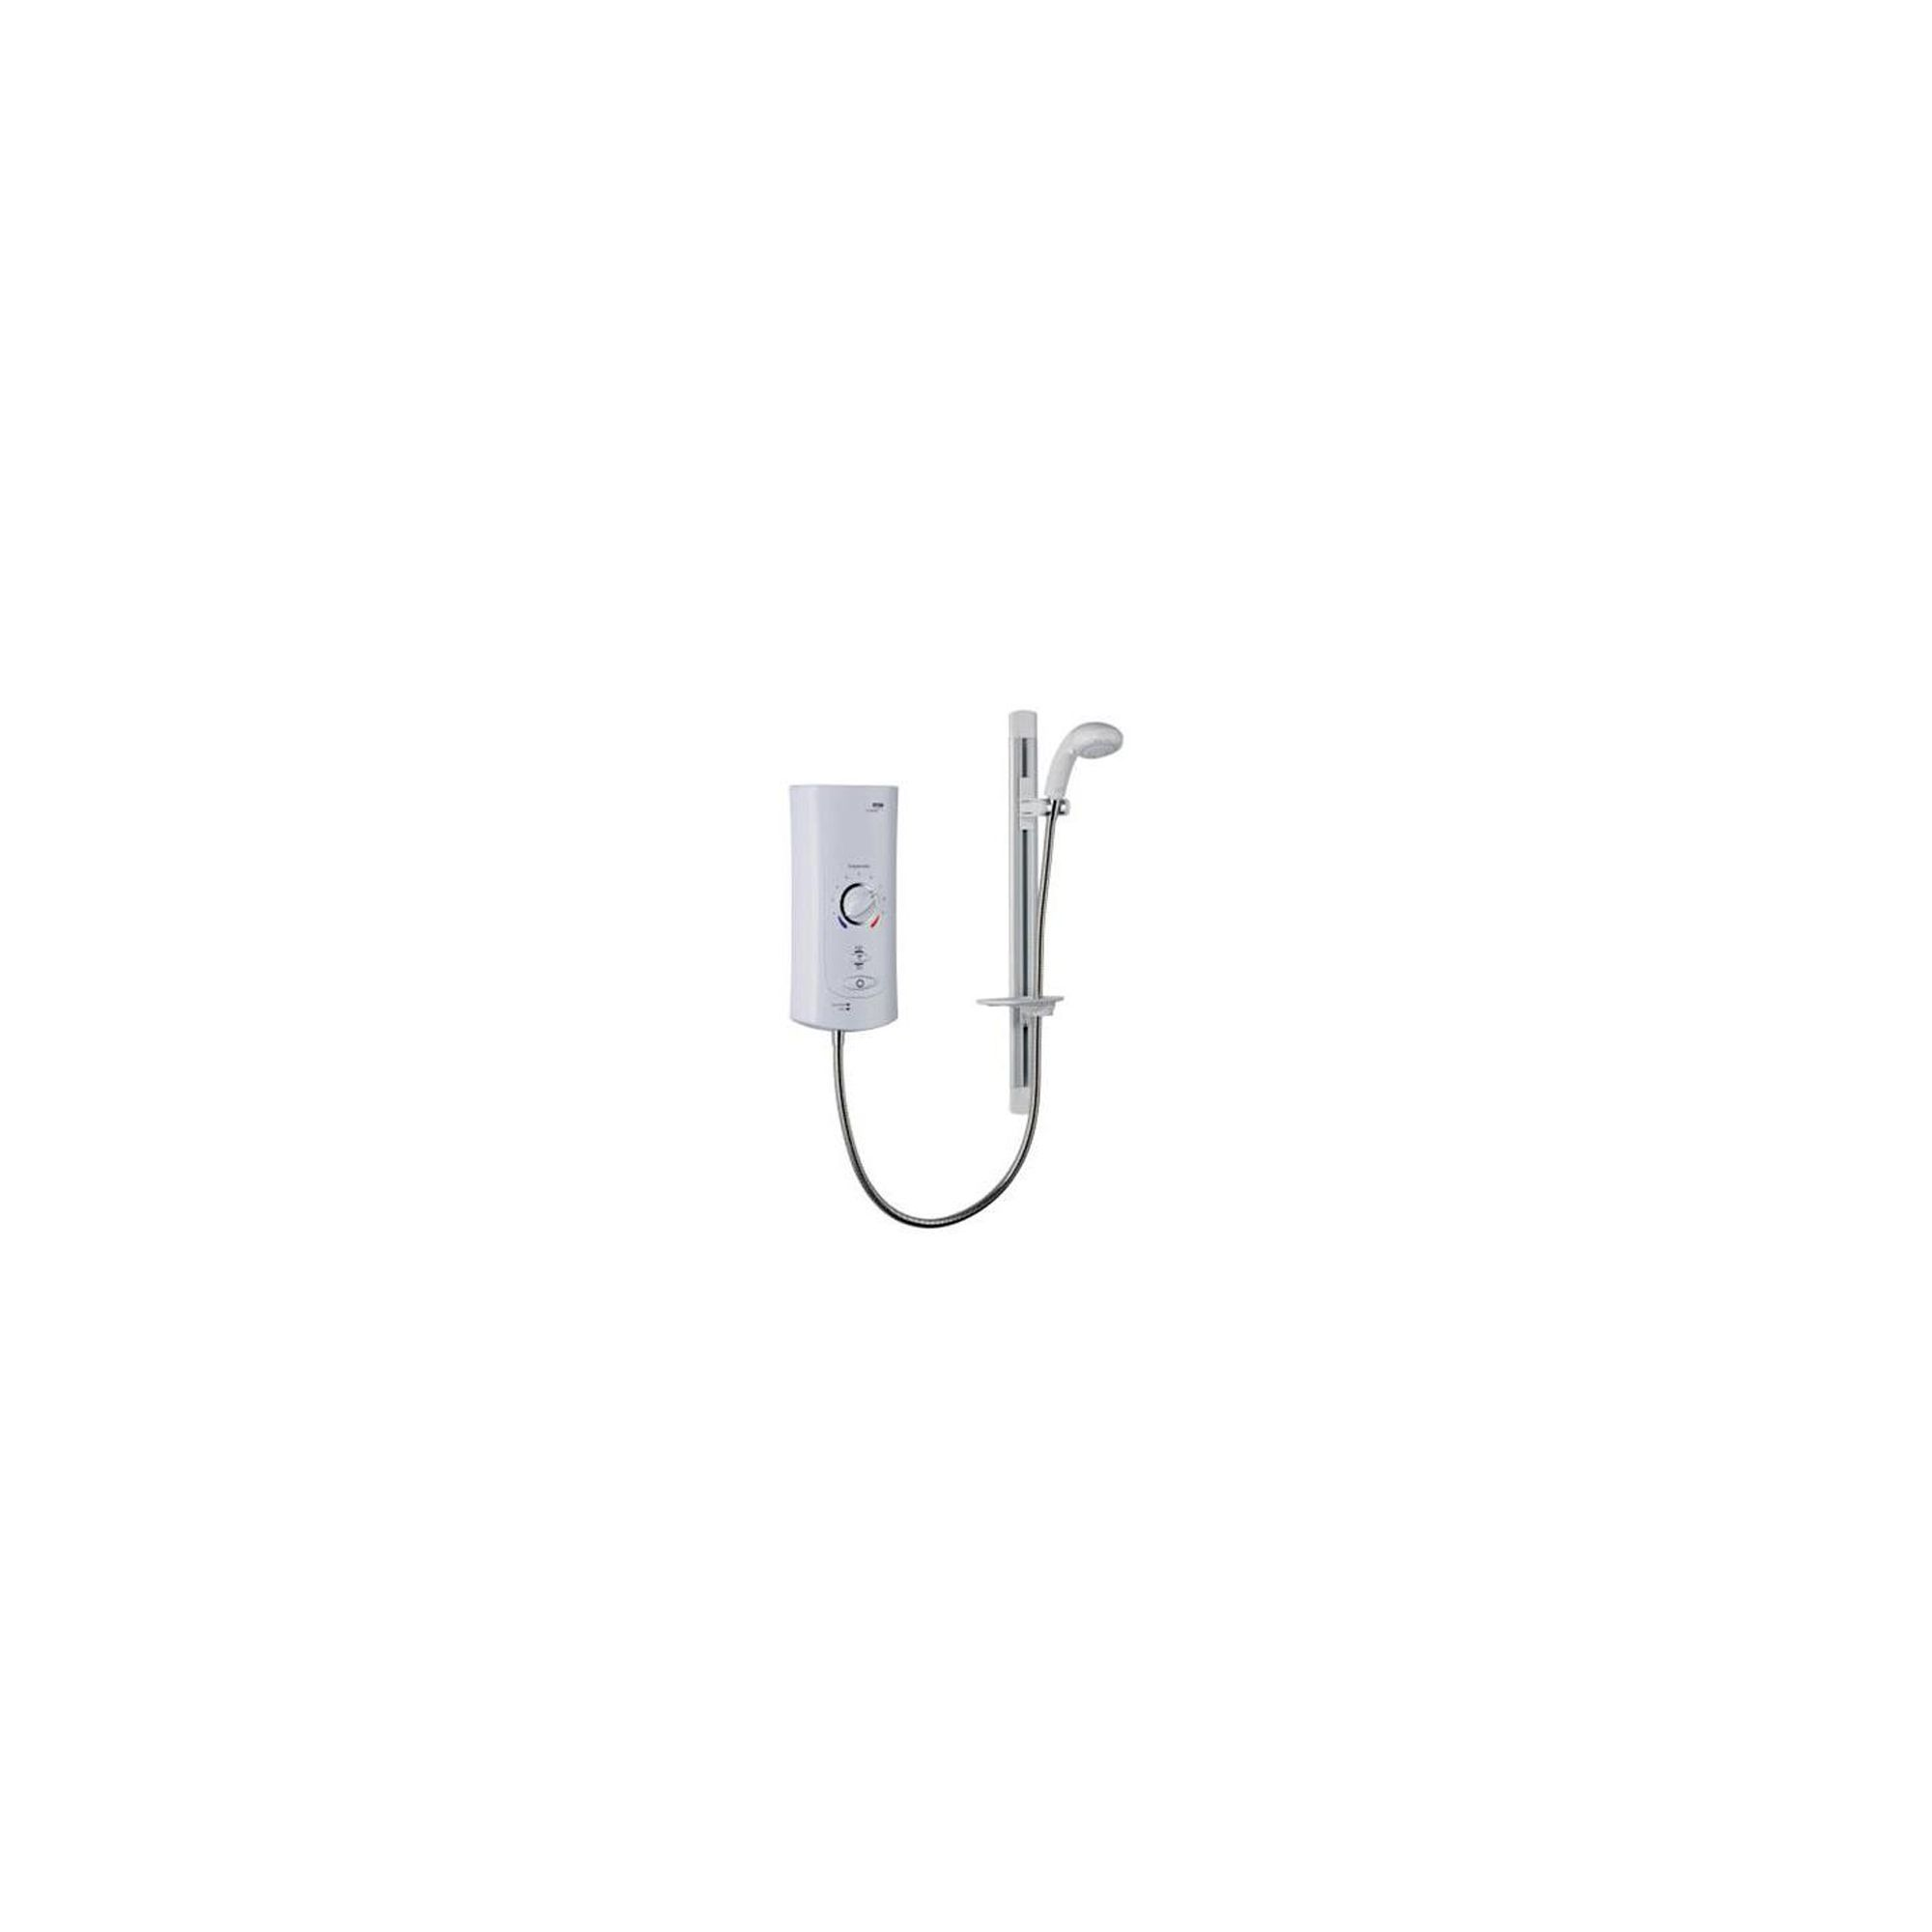 Mira Advance ATL Extra 9.0 kW Electric Shower, Auto Start Whale Pump, White/Chrome at Tesco Direct